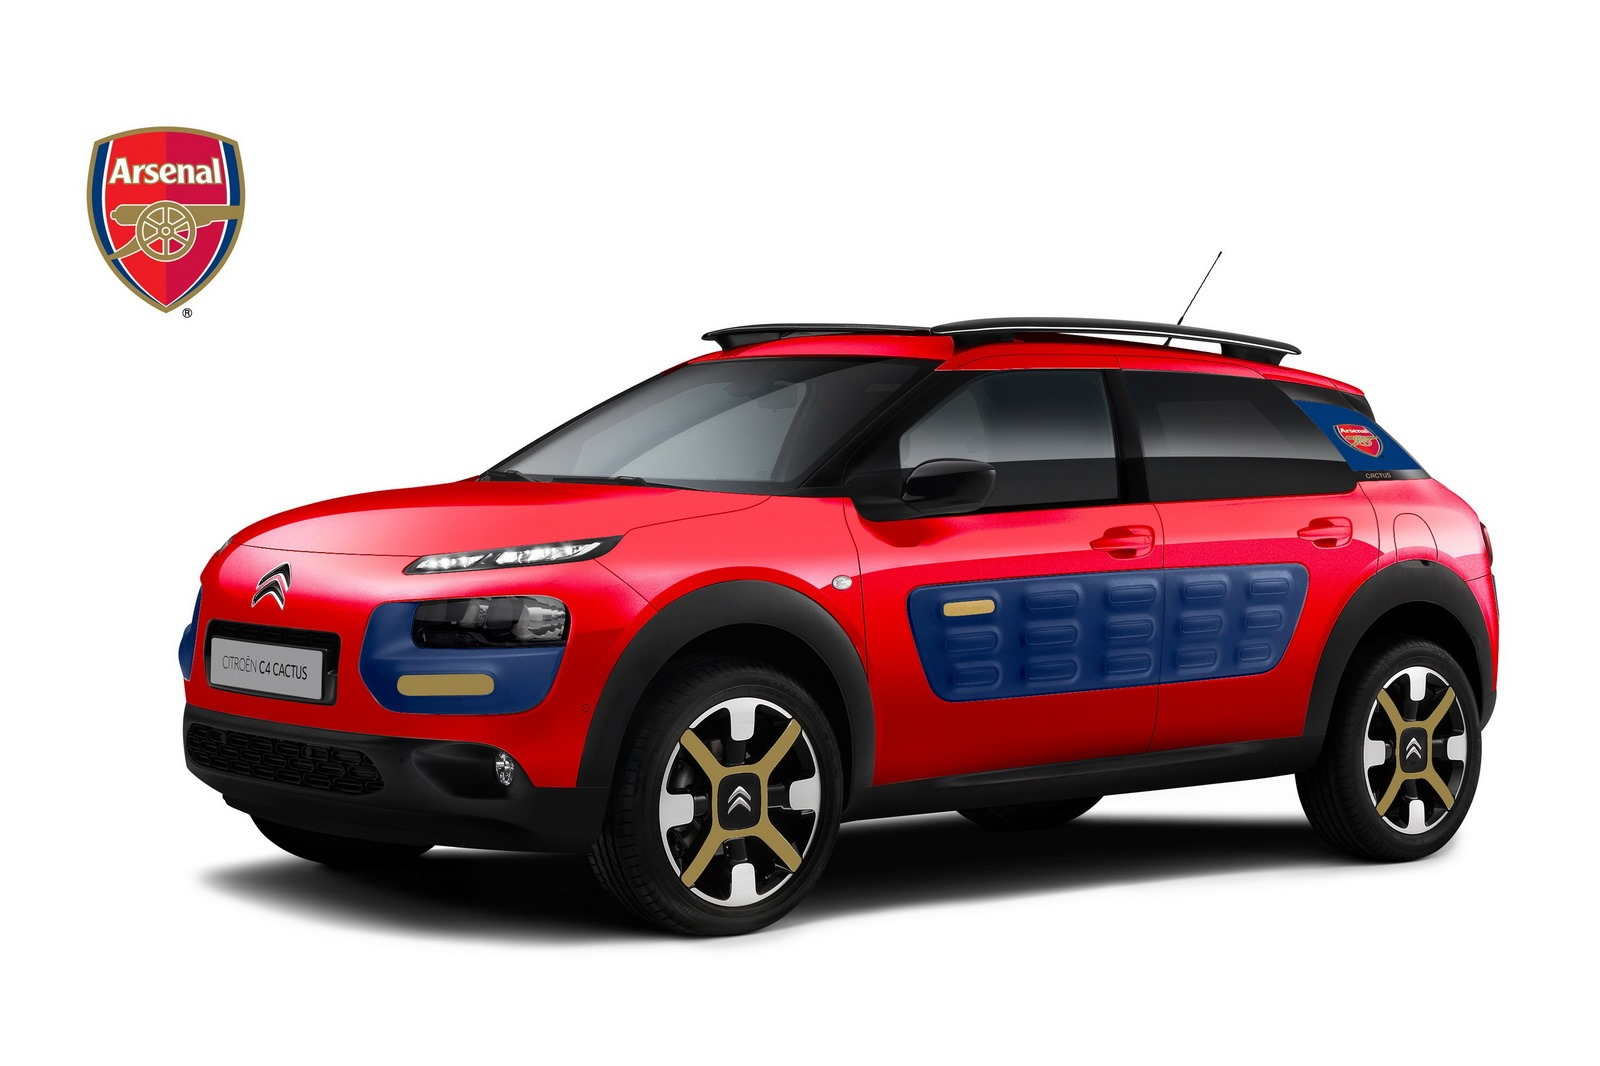 citroen c4 cactus arsenal edition revealed with g o a l i e system autoevolution. Black Bedroom Furniture Sets. Home Design Ideas